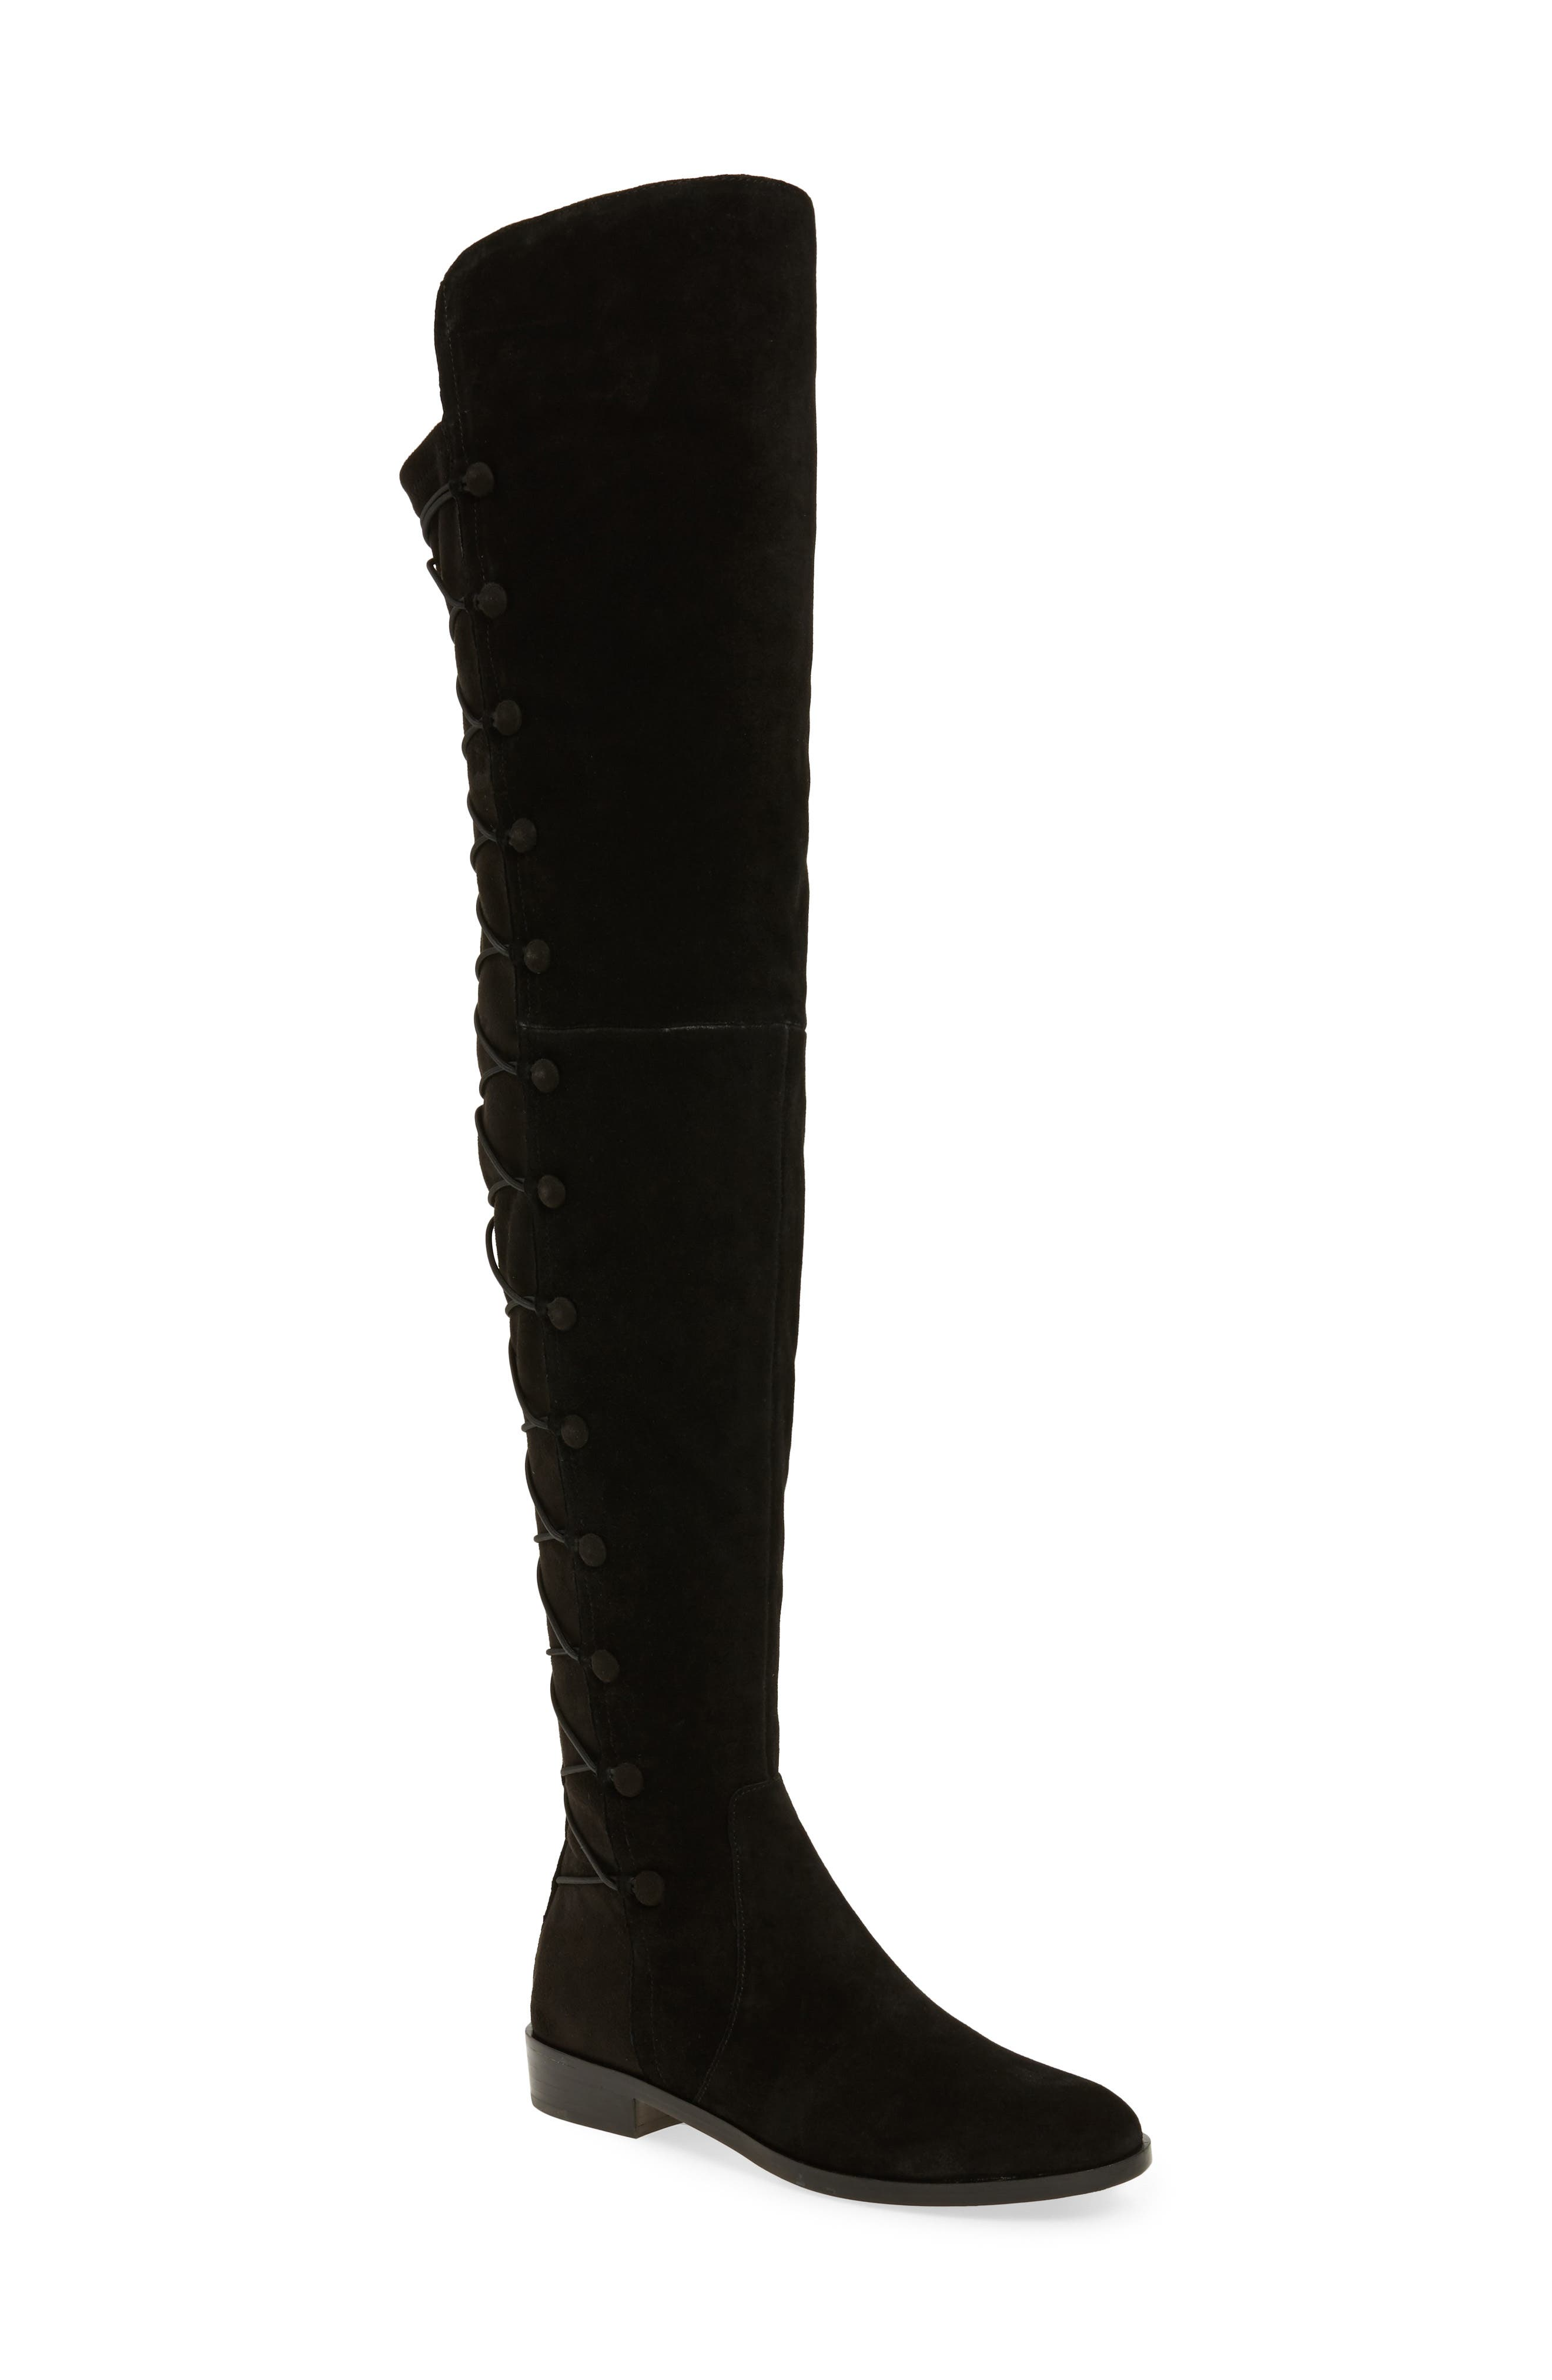 Croatia Over the Knee Boot,                             Main thumbnail 1, color,                             002